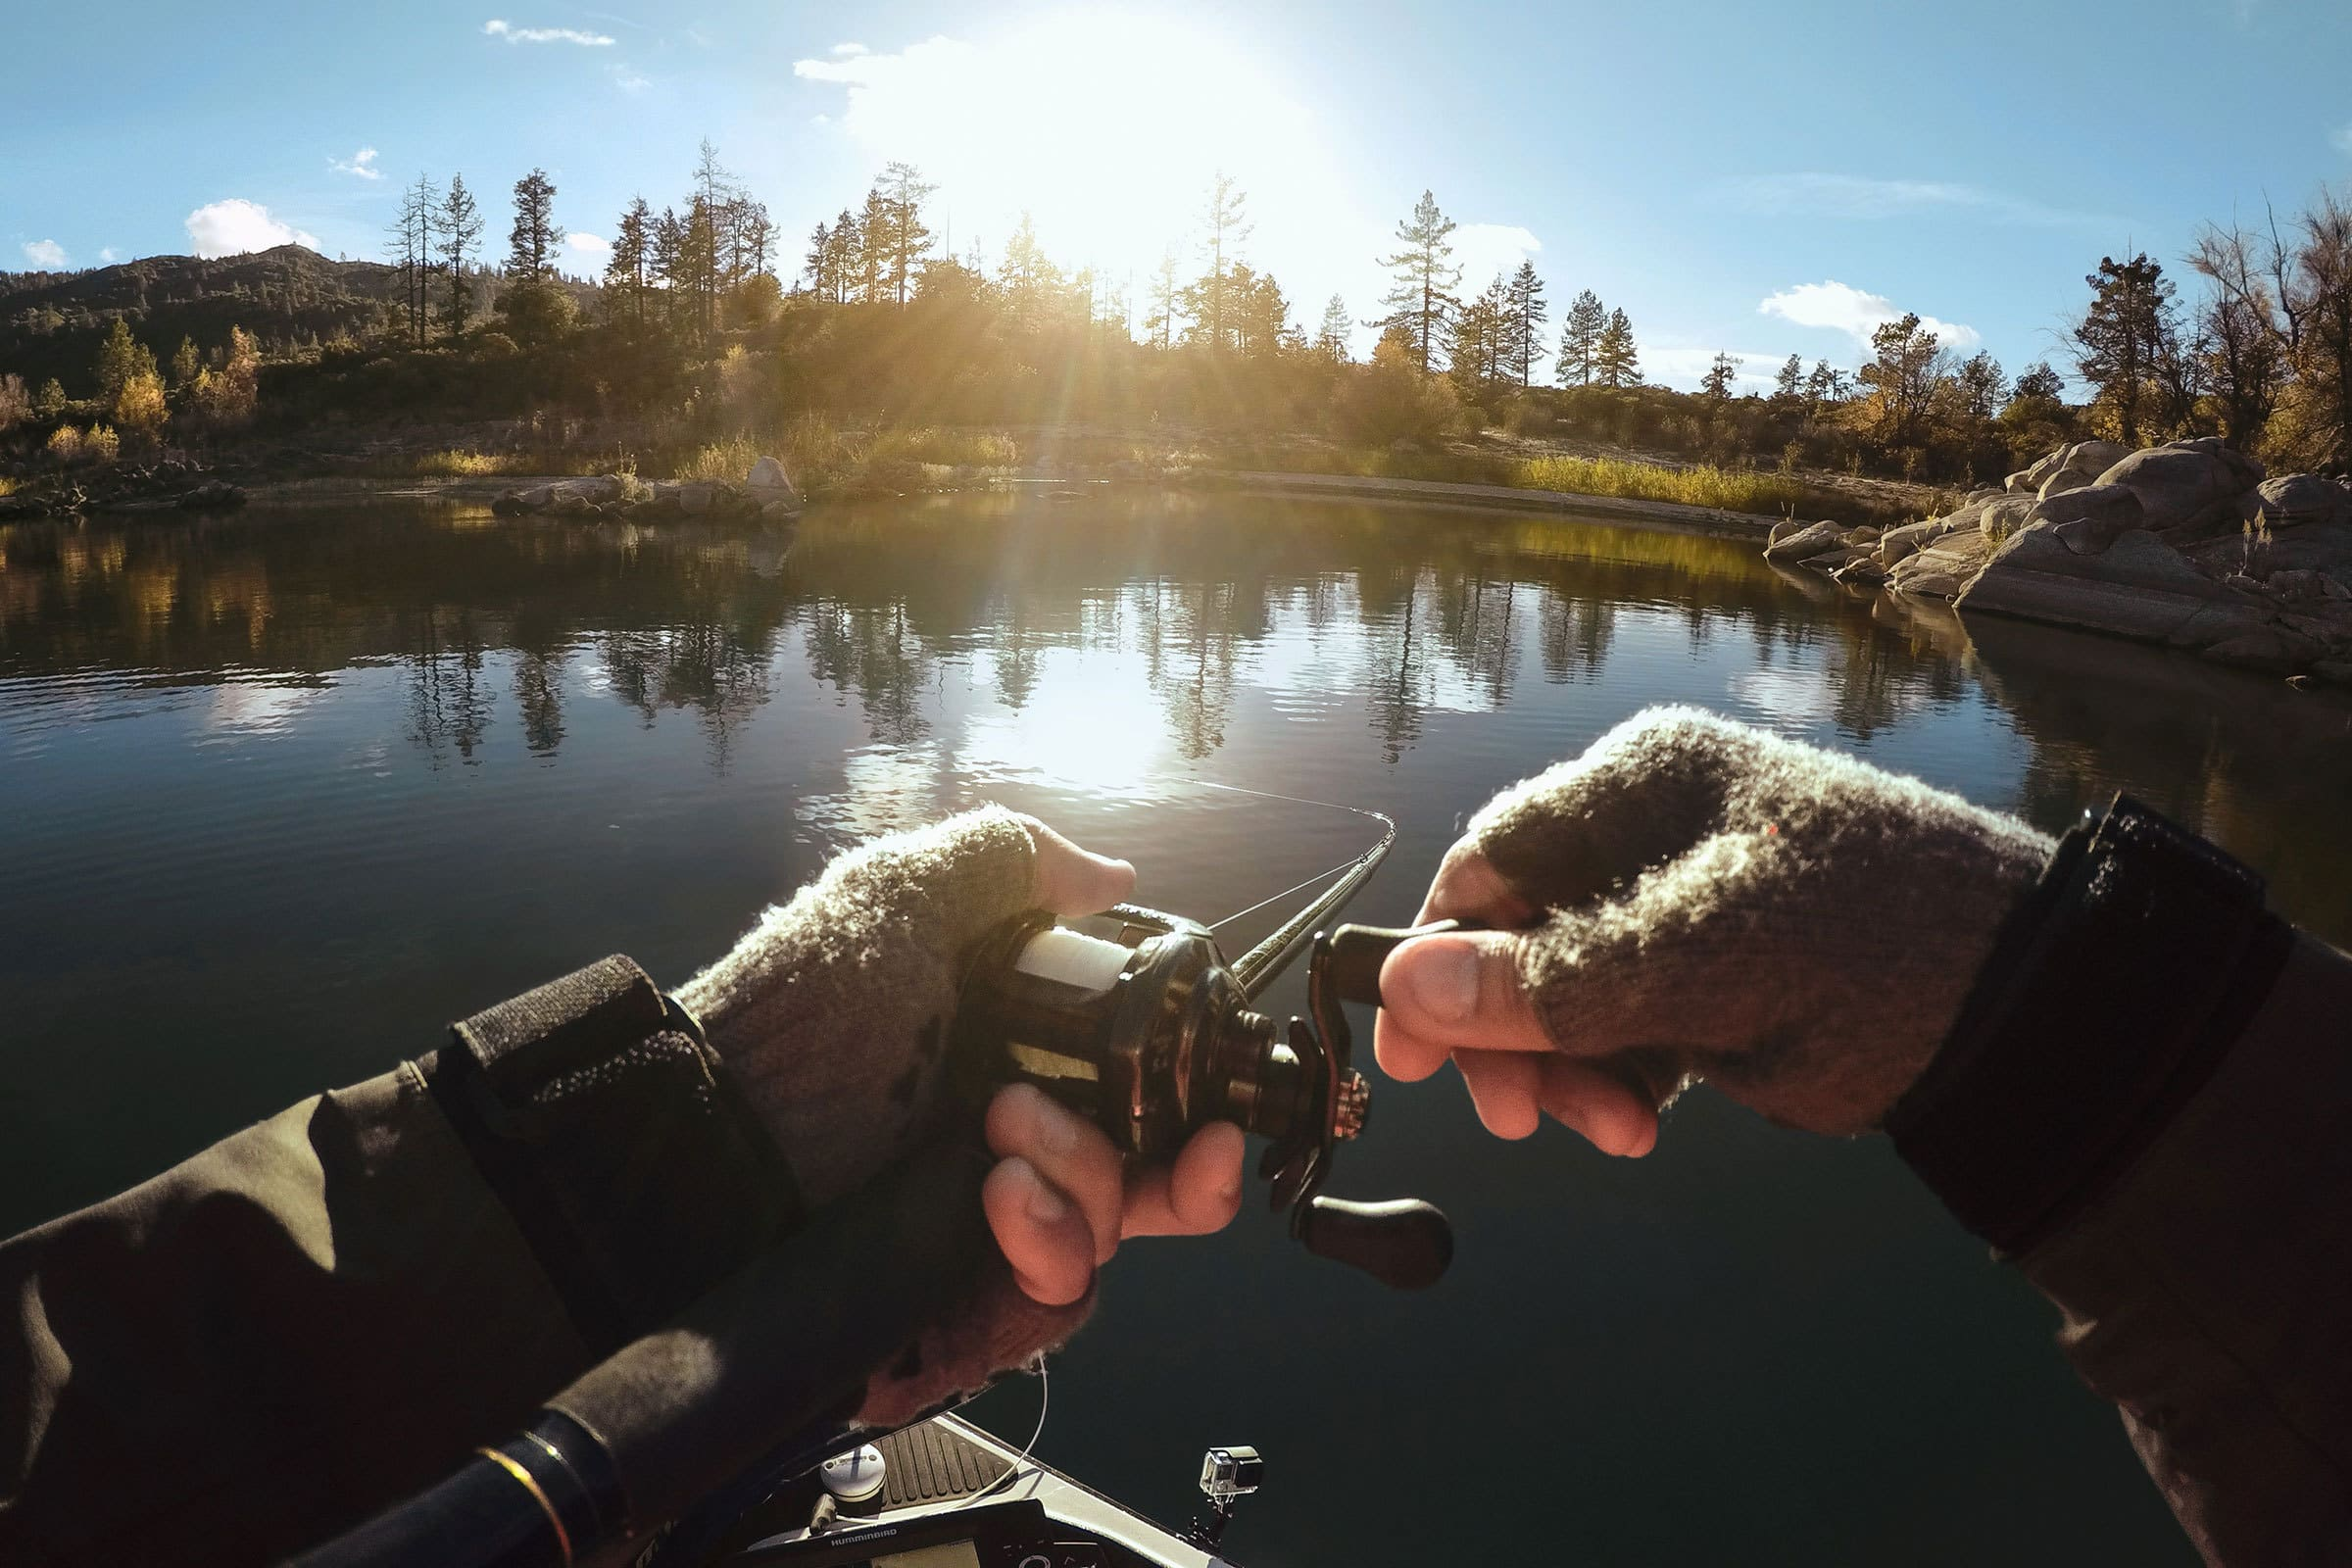 Cover Image The 5 Best GoPro Accessories For Fishing